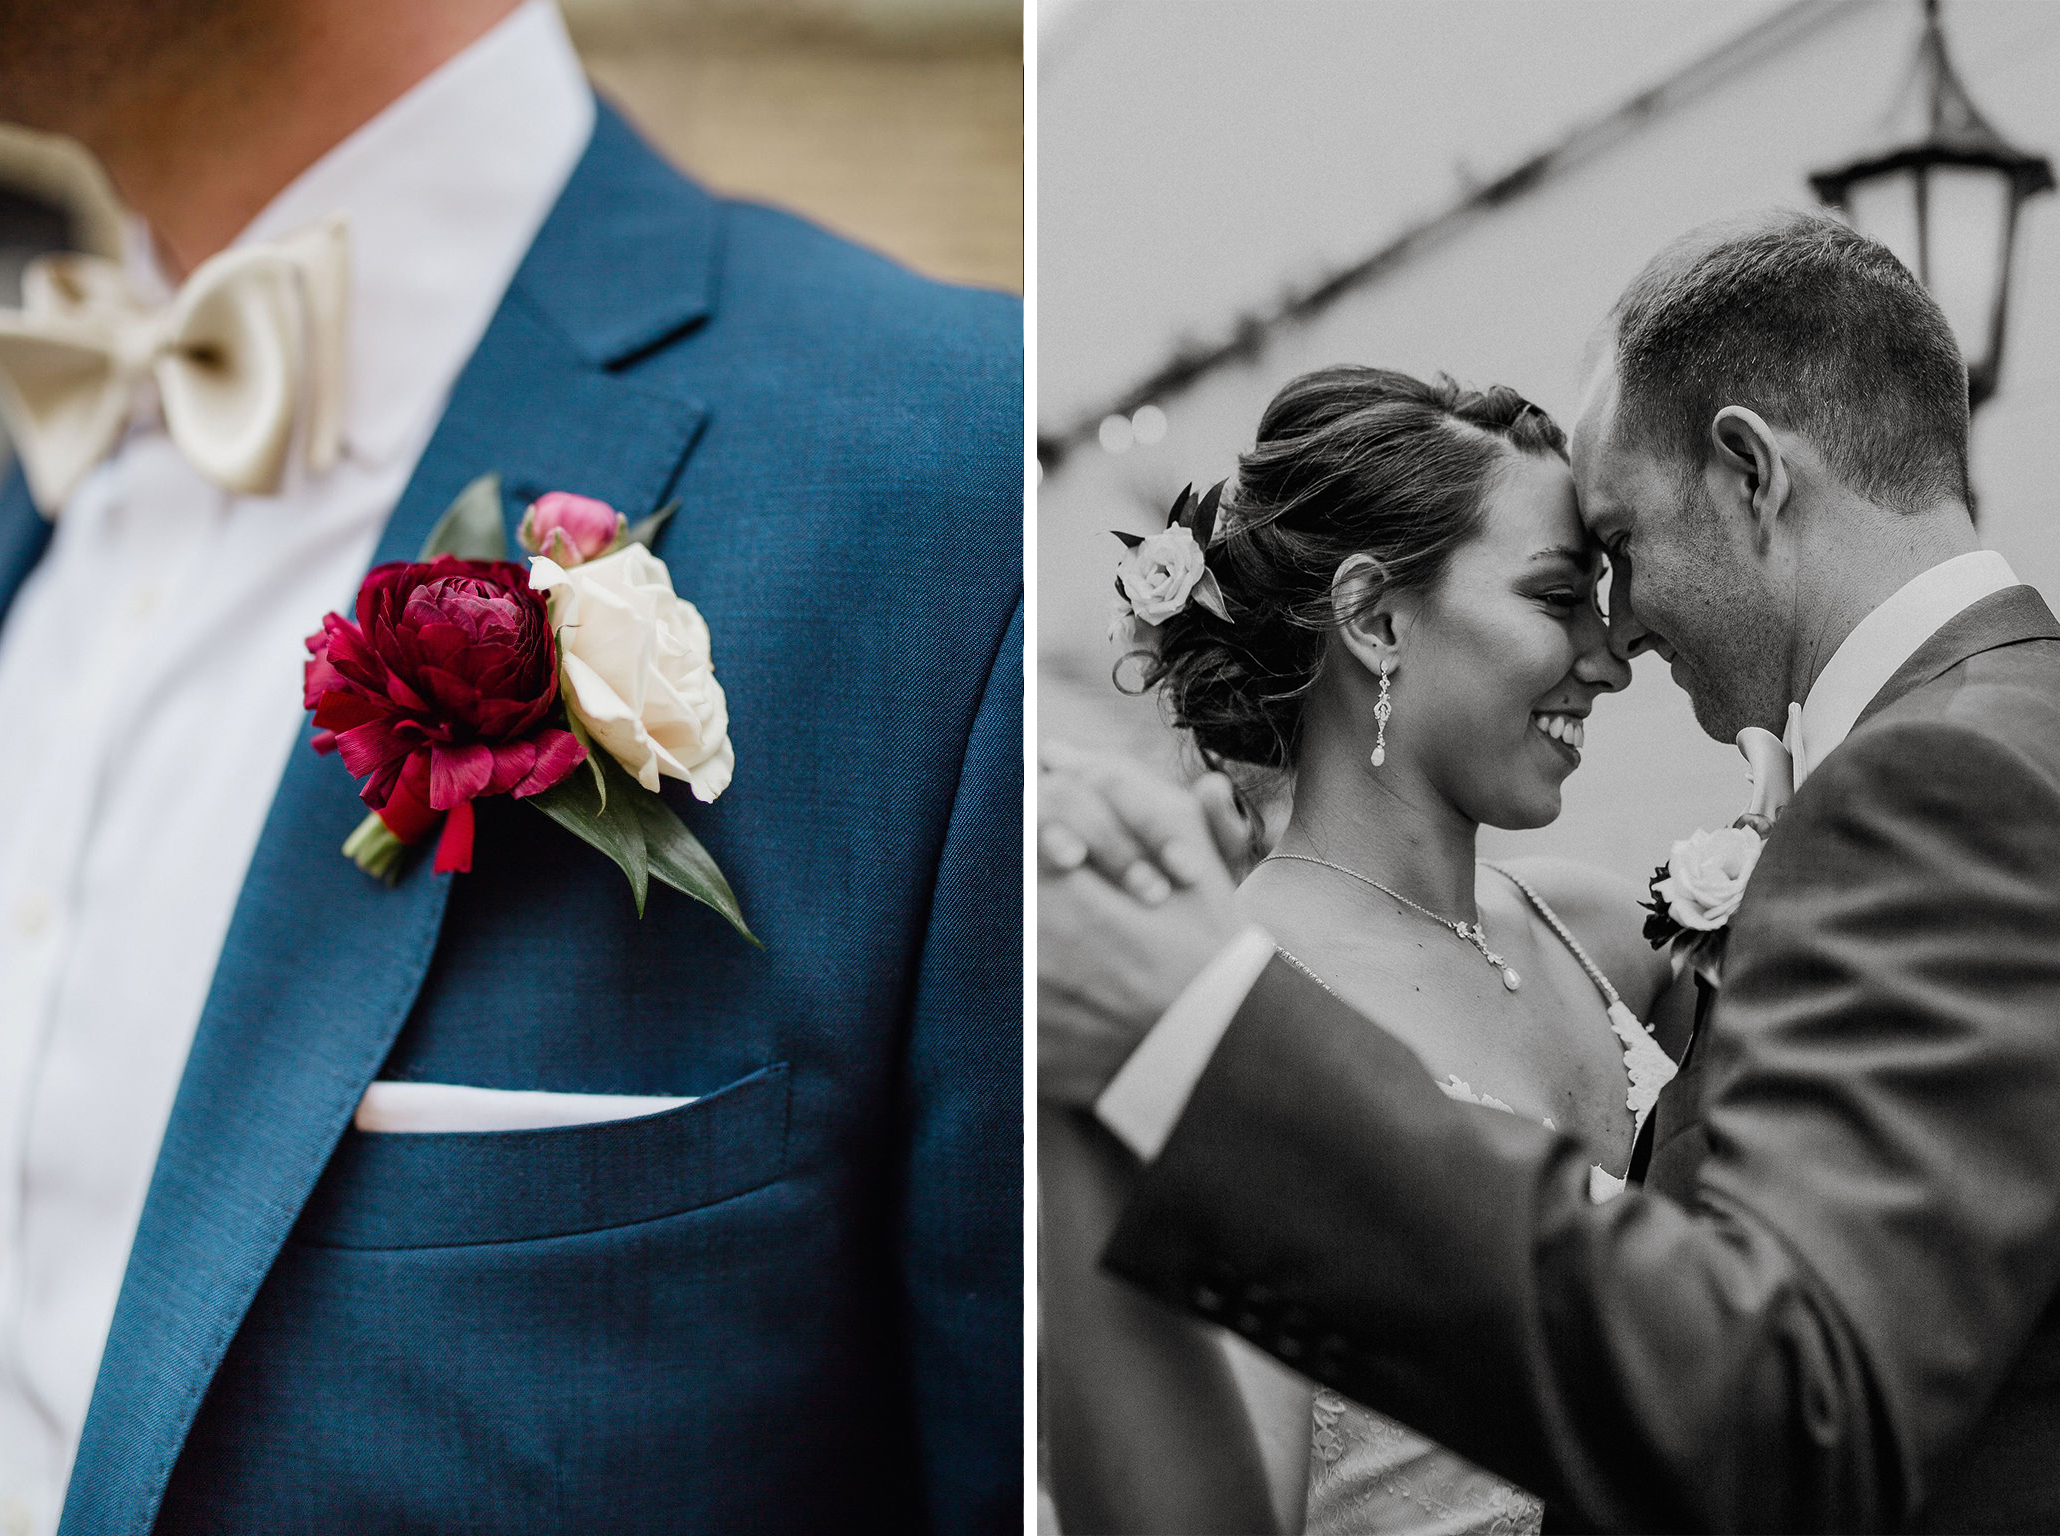 22 2 boutonniere bride first look rachel desjardins studio wedding story telling moments photography kellermans event center minnesota cry emotional.jpg